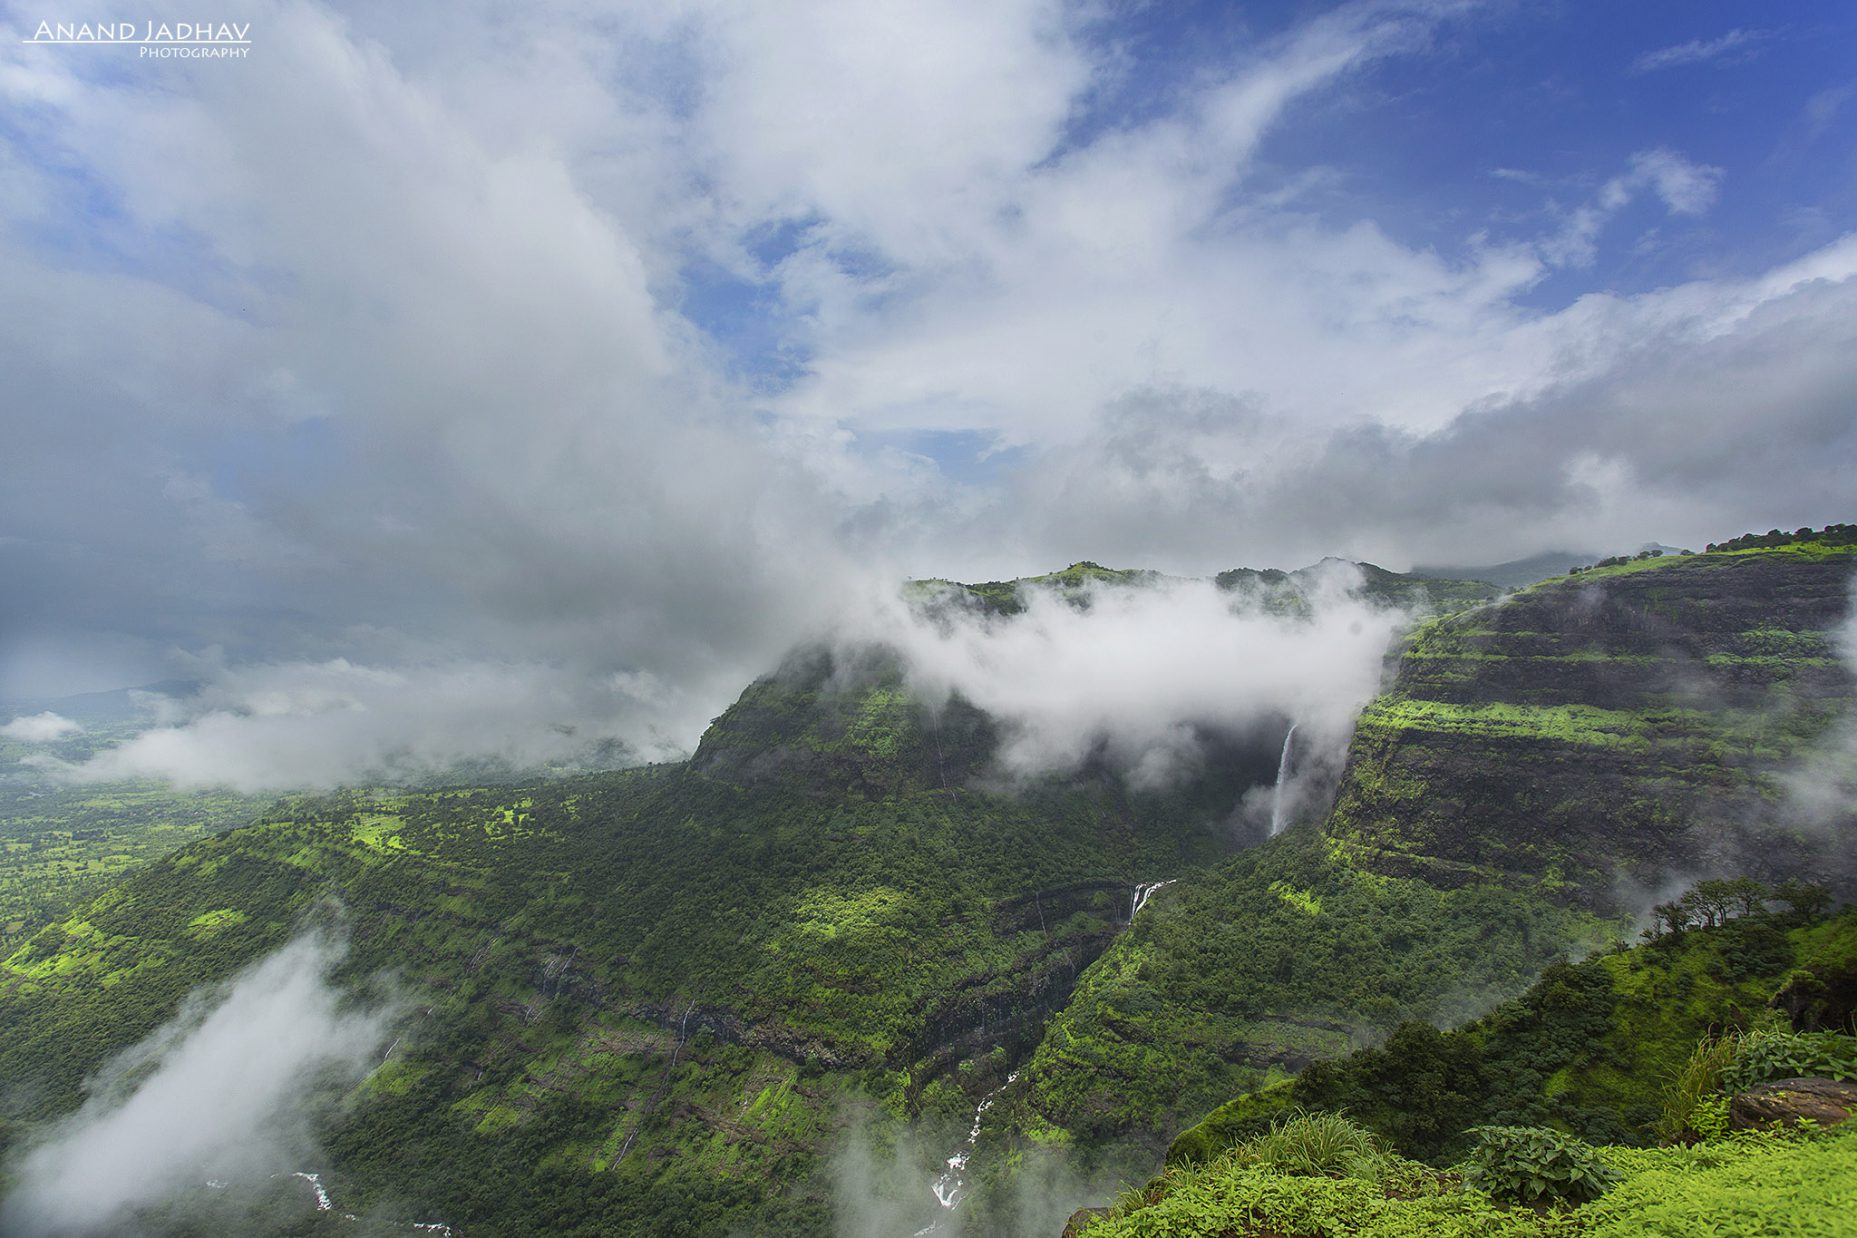 Landscape – Monsoon